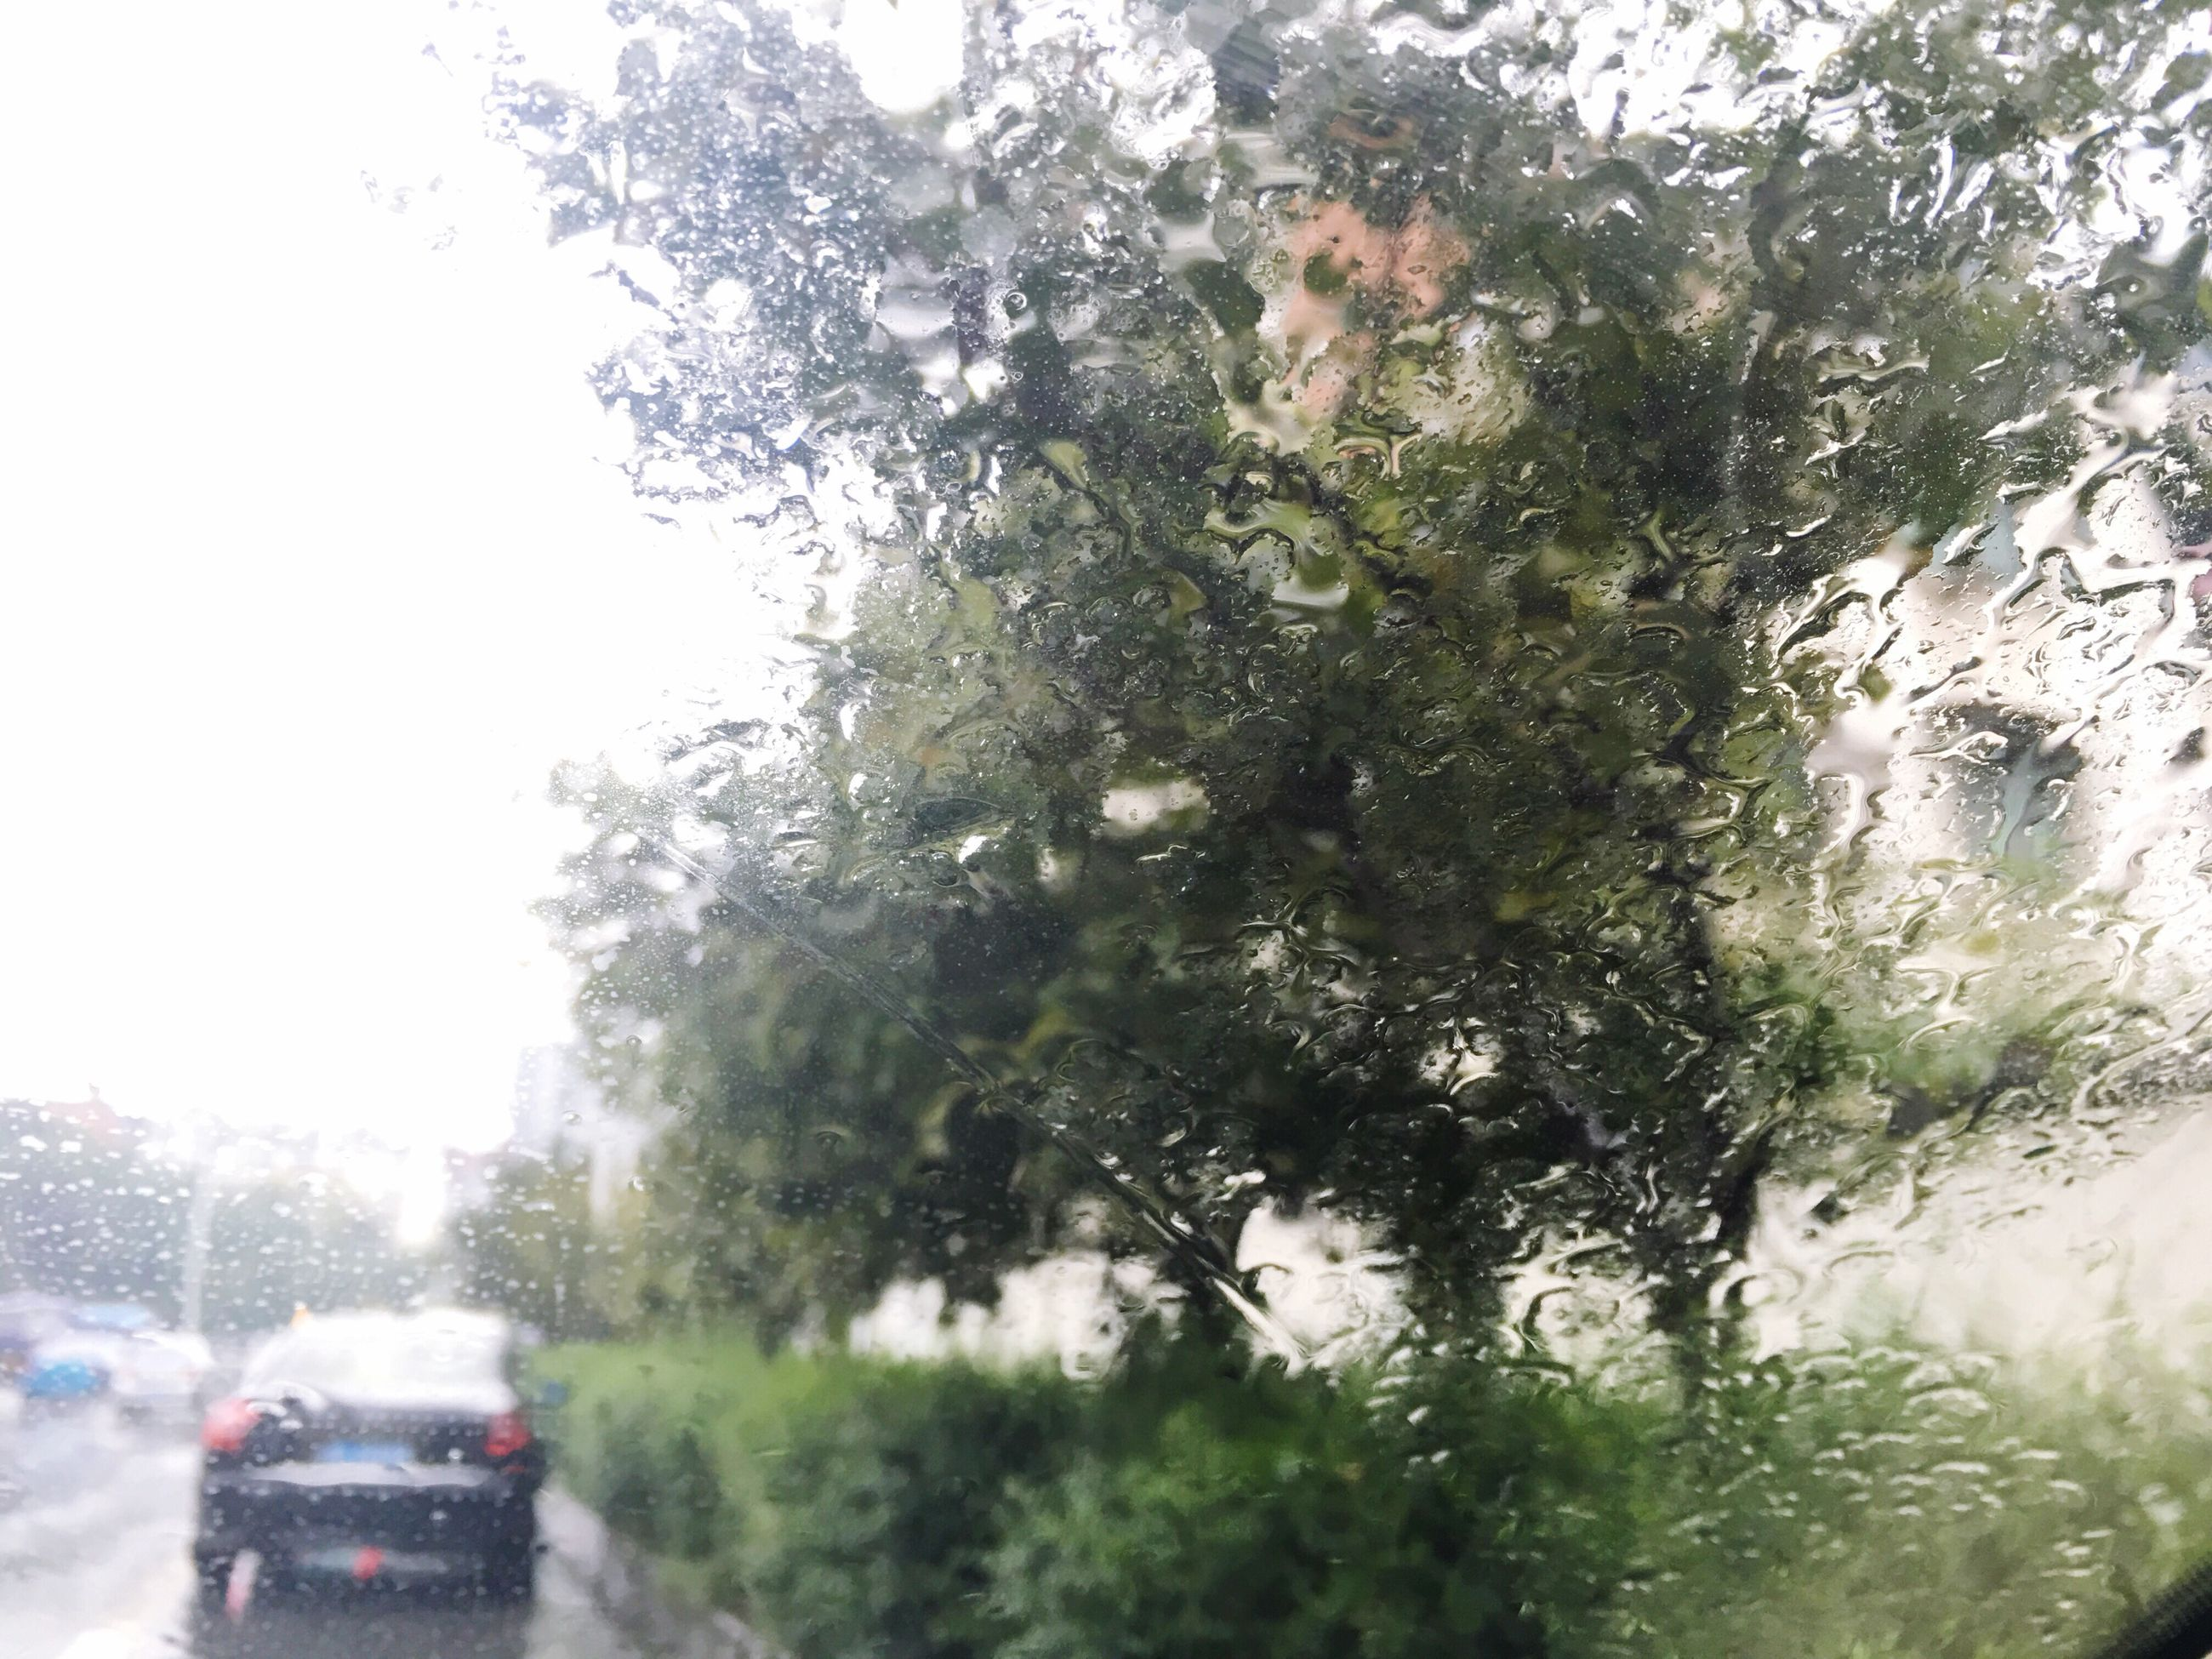 transportation, car, land vehicle, mode of transport, road, tree, rain, on the move, window, glass - material, water, travel, transparent, rainy, nature, day, tail light, green color, the way forward, city life, journey